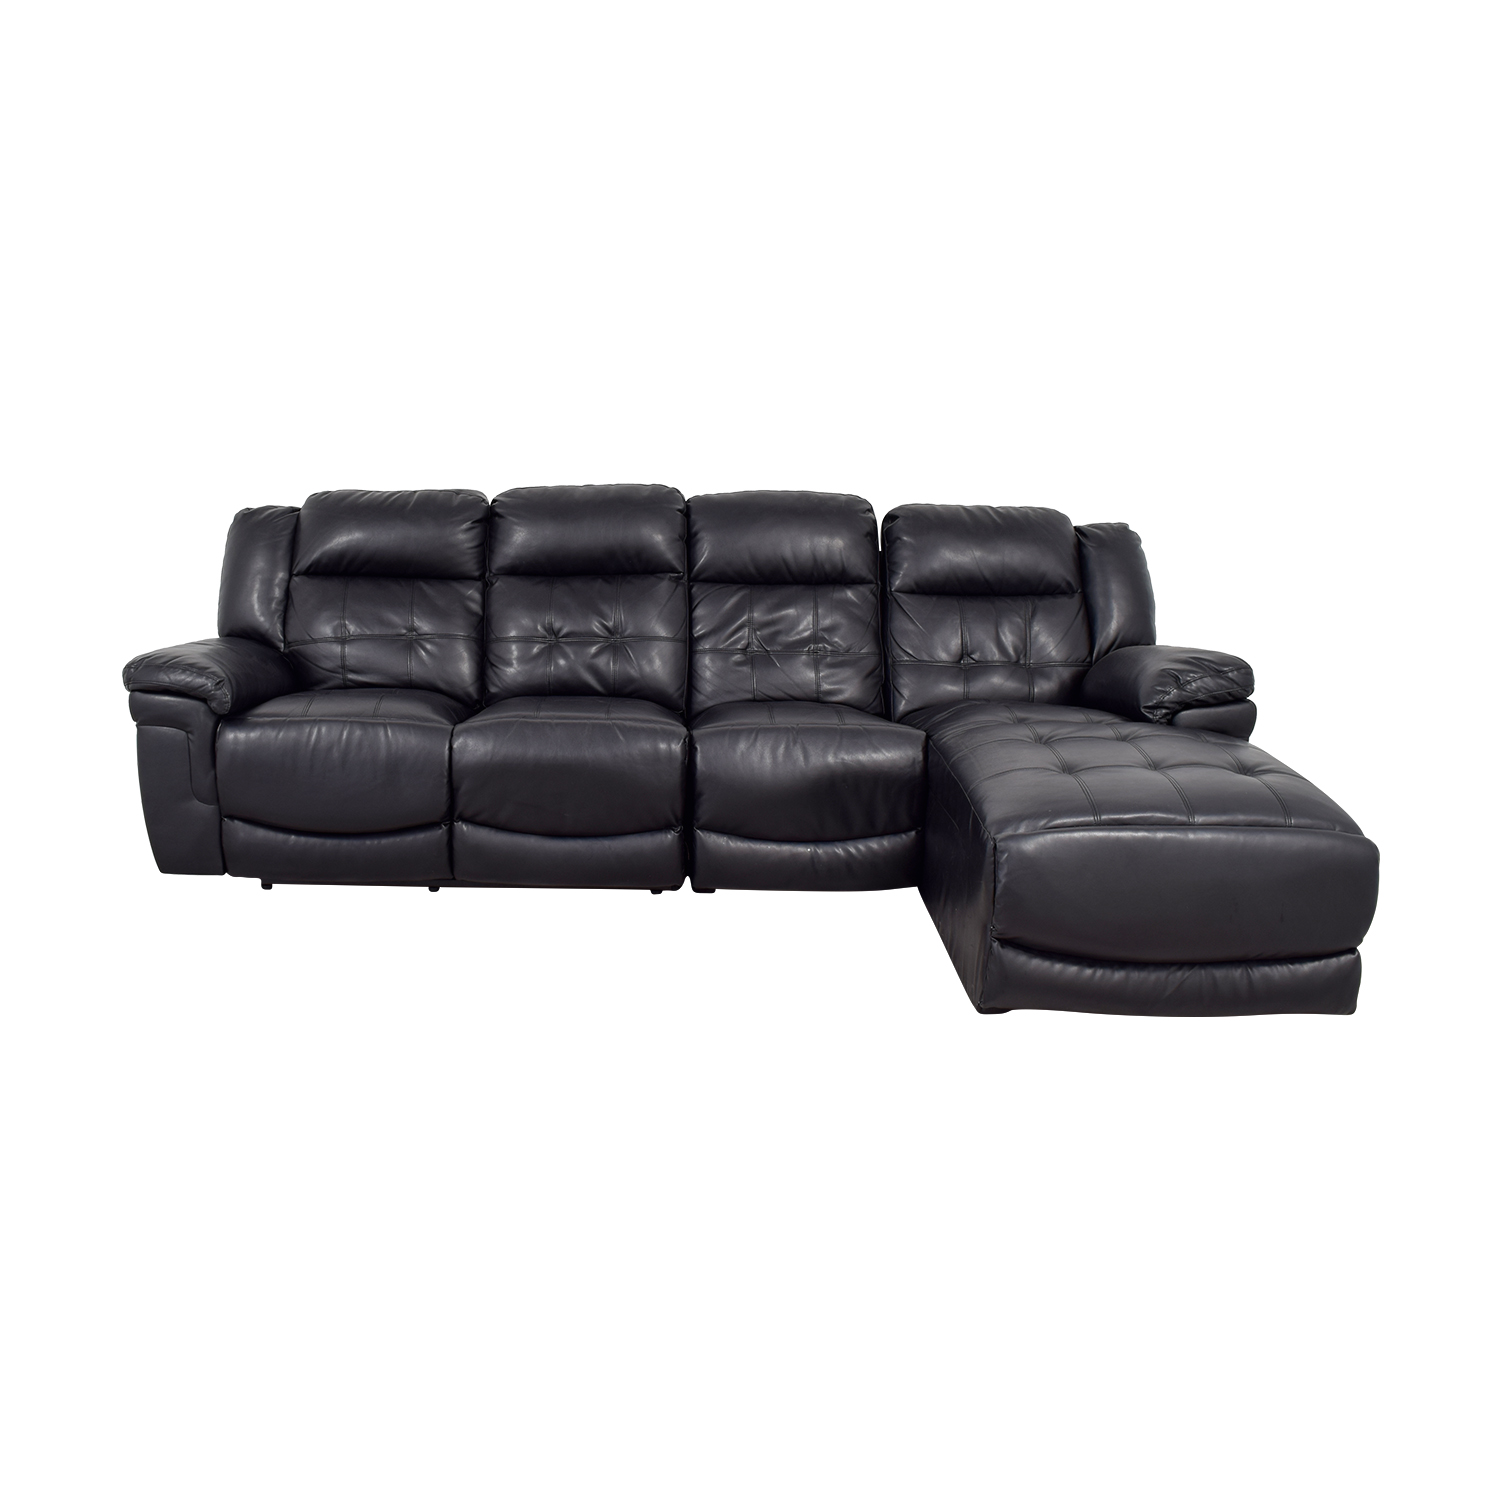 Black Leather Sectional with Recliner sale